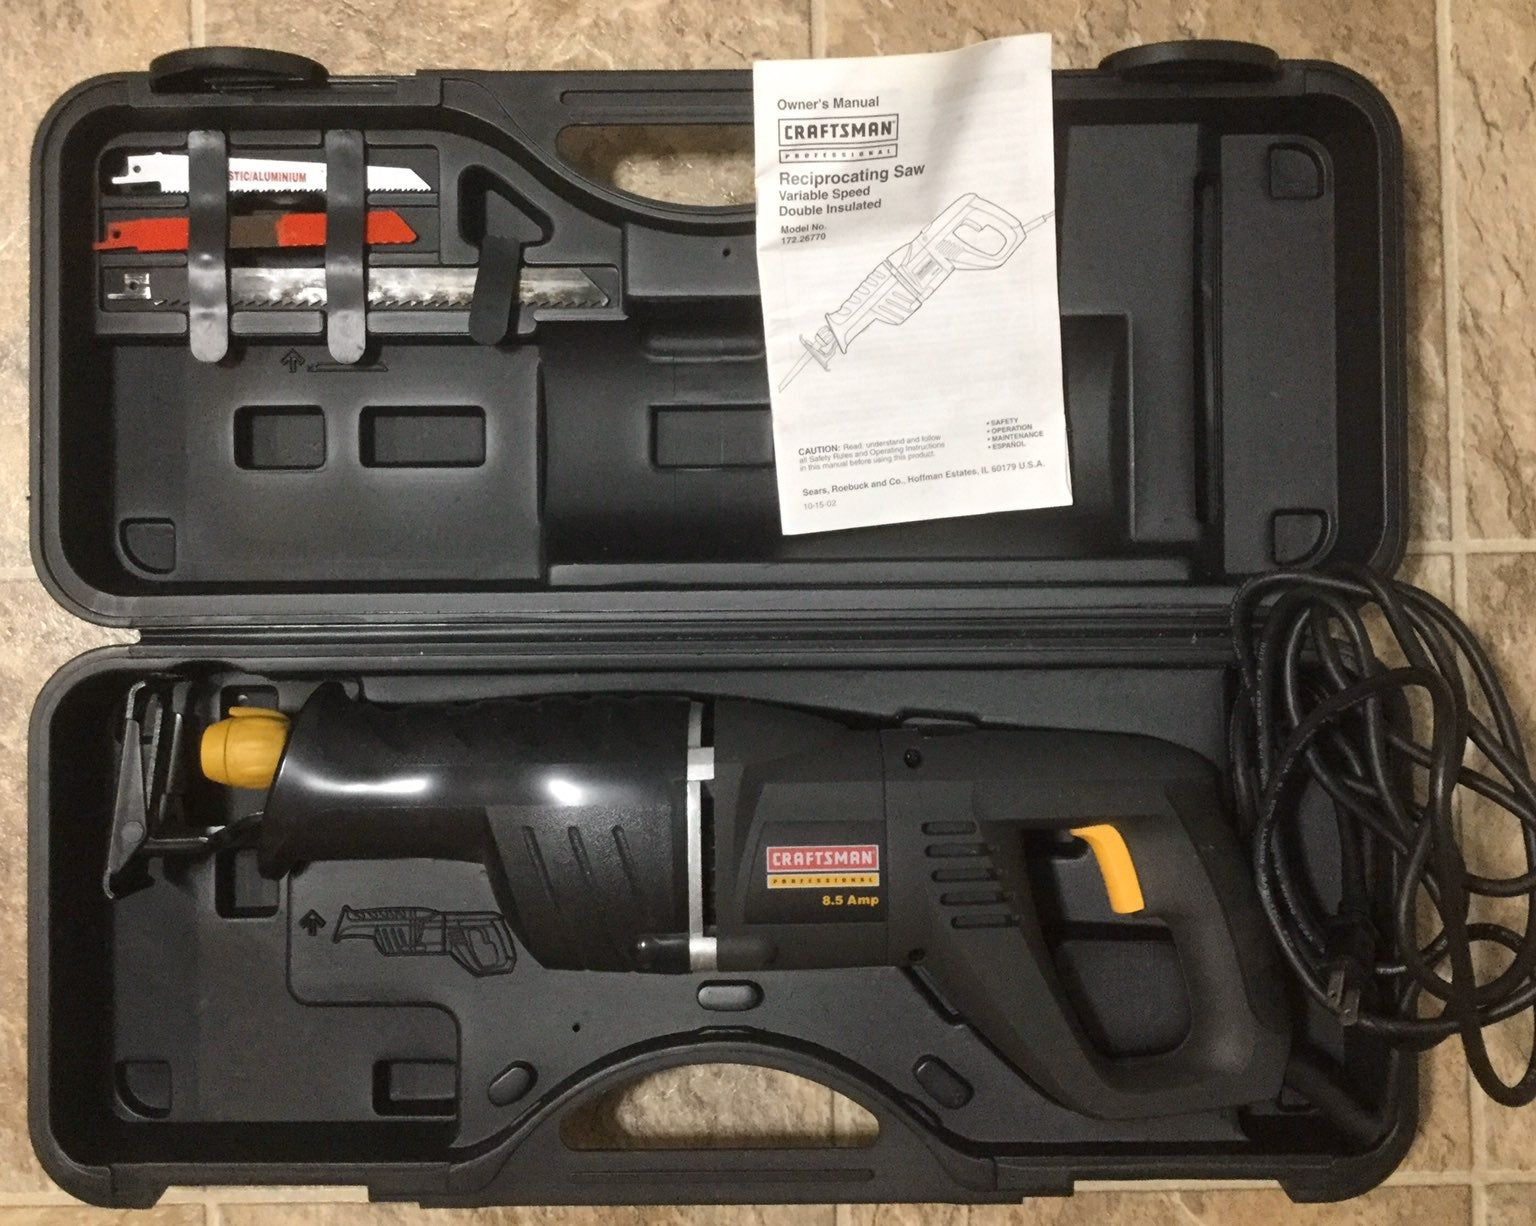 New Without Tags Open Box Craftsman Professional 8 5 Amp Corded Reciprocating Saw Model 172 26770 With Reciprocating Saw Craftsman Craftsman Tools